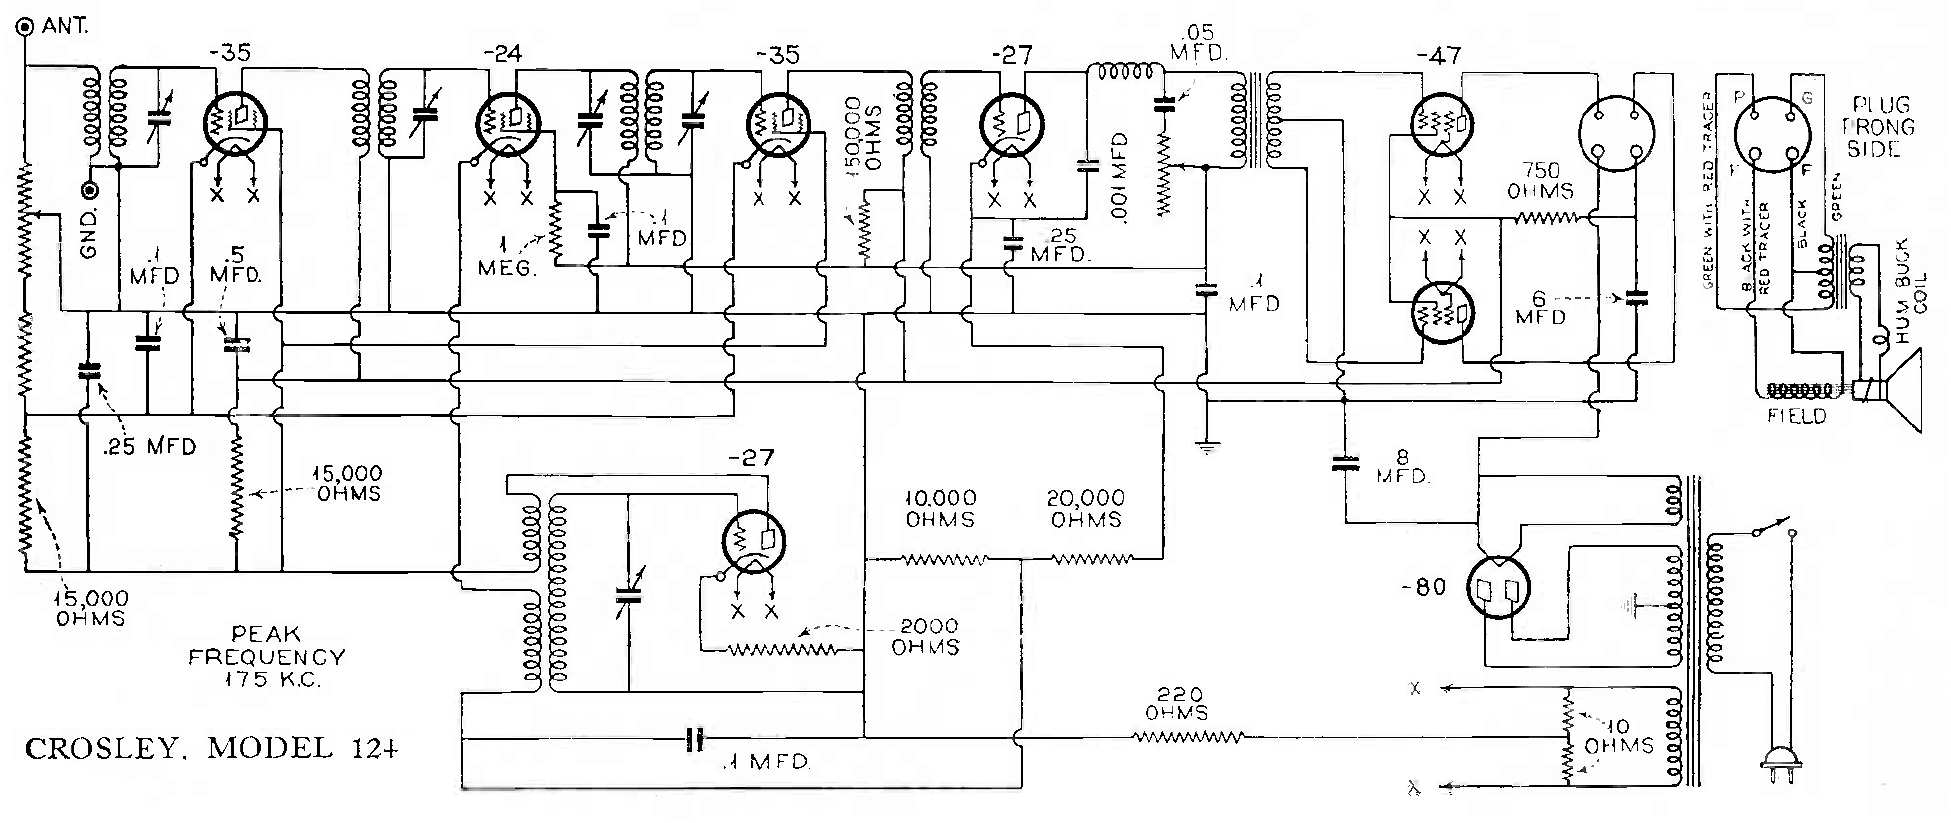 Crosley Engine Diagram | Wiring Liry on